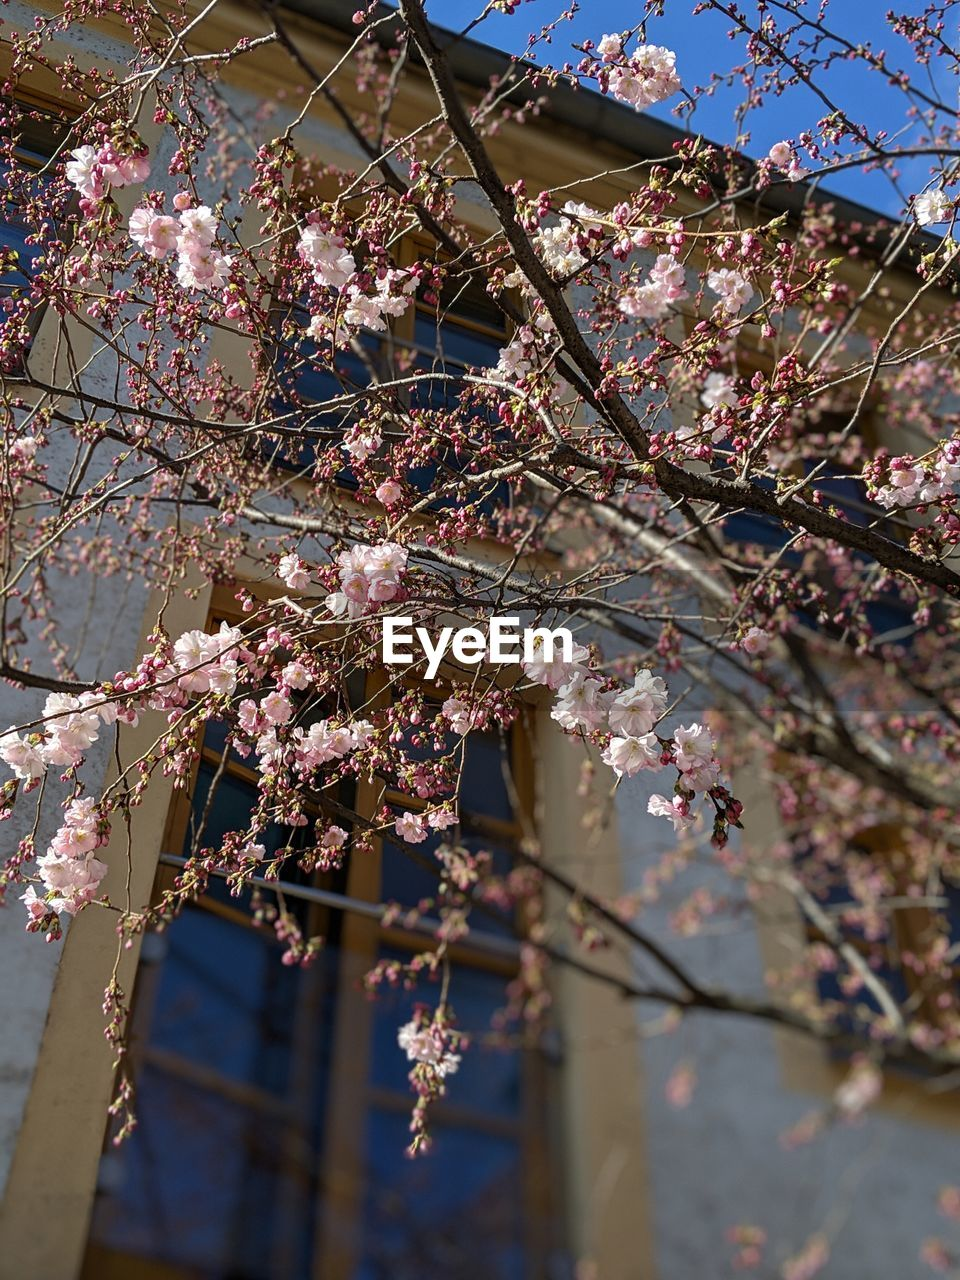 tree, flower, flowering plant, plant, branch, low angle view, blossom, springtime, growth, freshness, fragility, nature, vulnerability, cherry blossom, day, beauty in nature, building exterior, cherry tree, focus on foreground, no people, pink color, outdoors